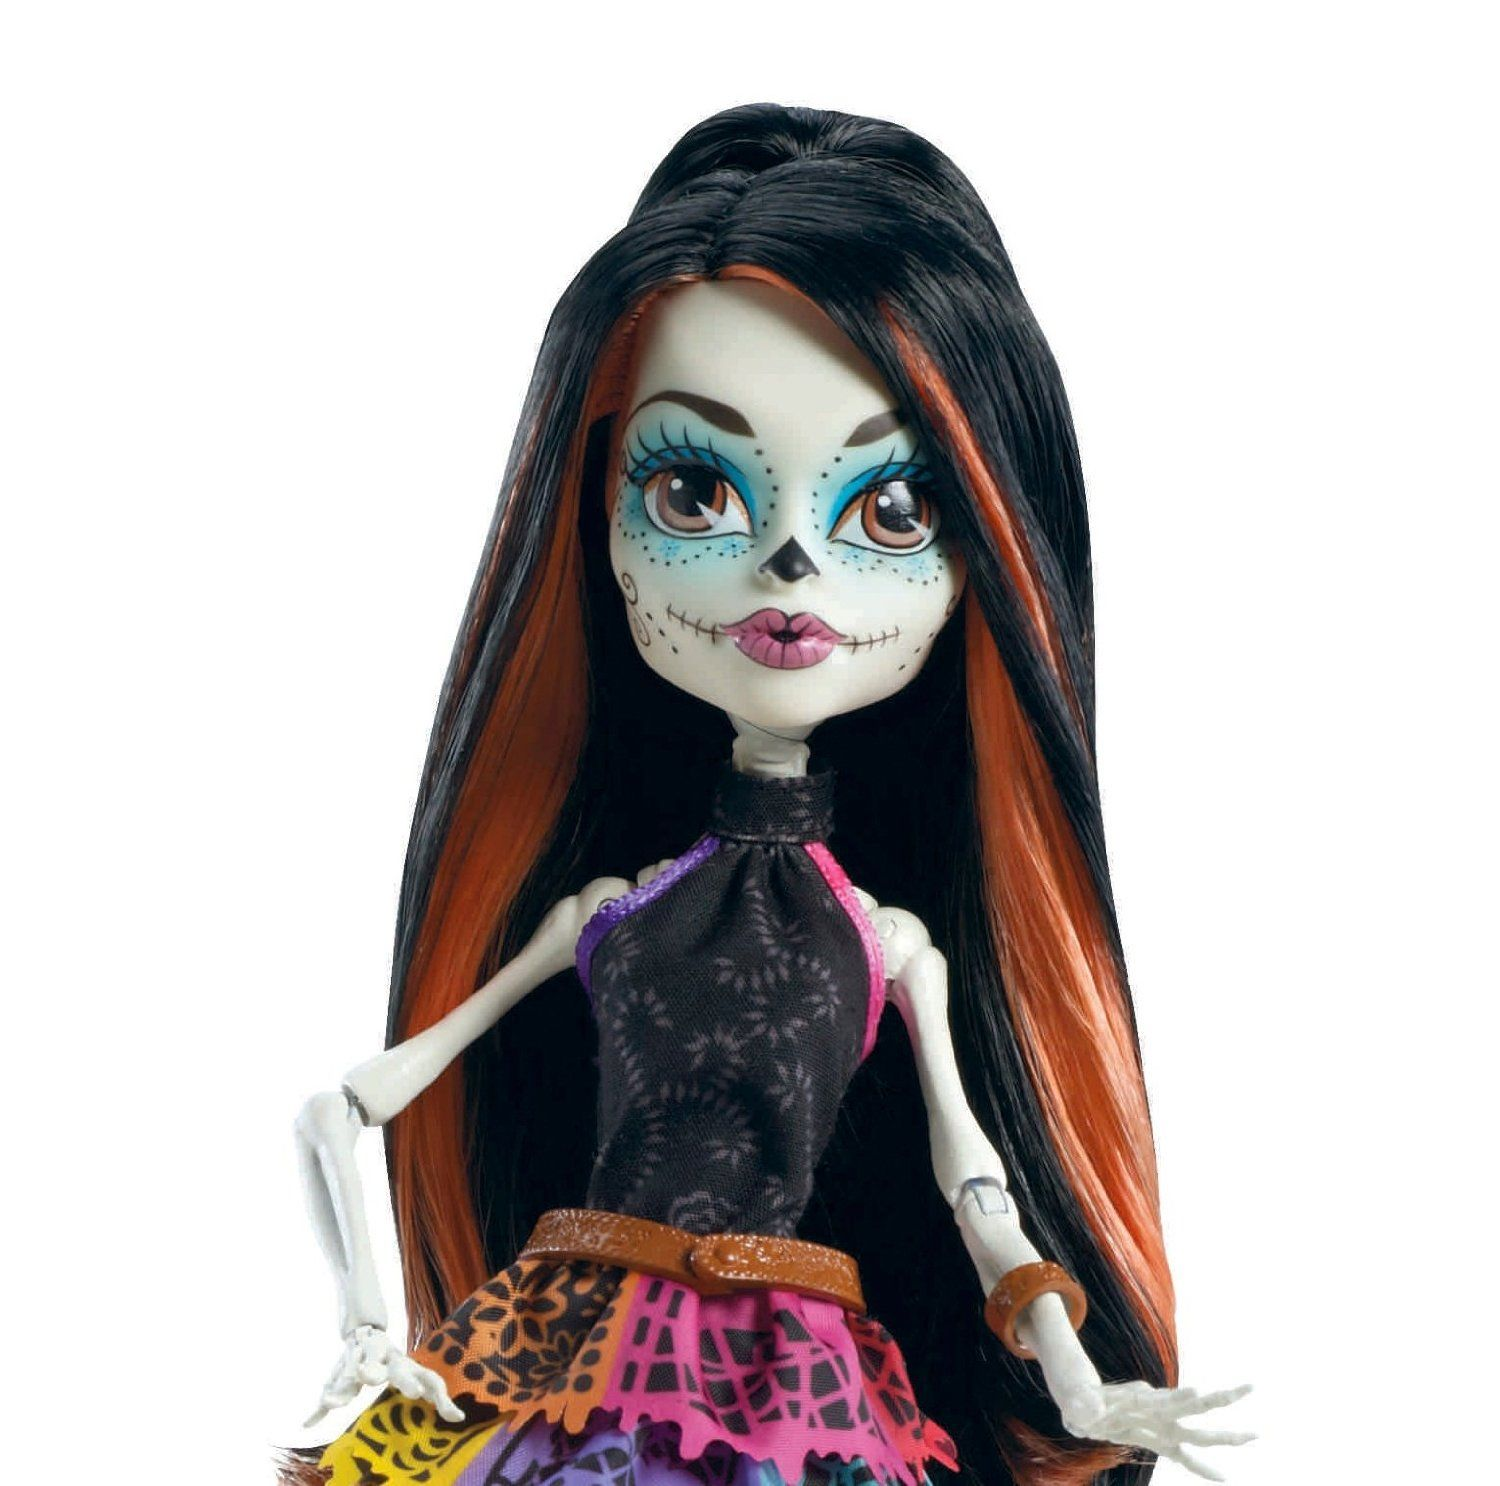 Monster High Skelita Calaveras Doll